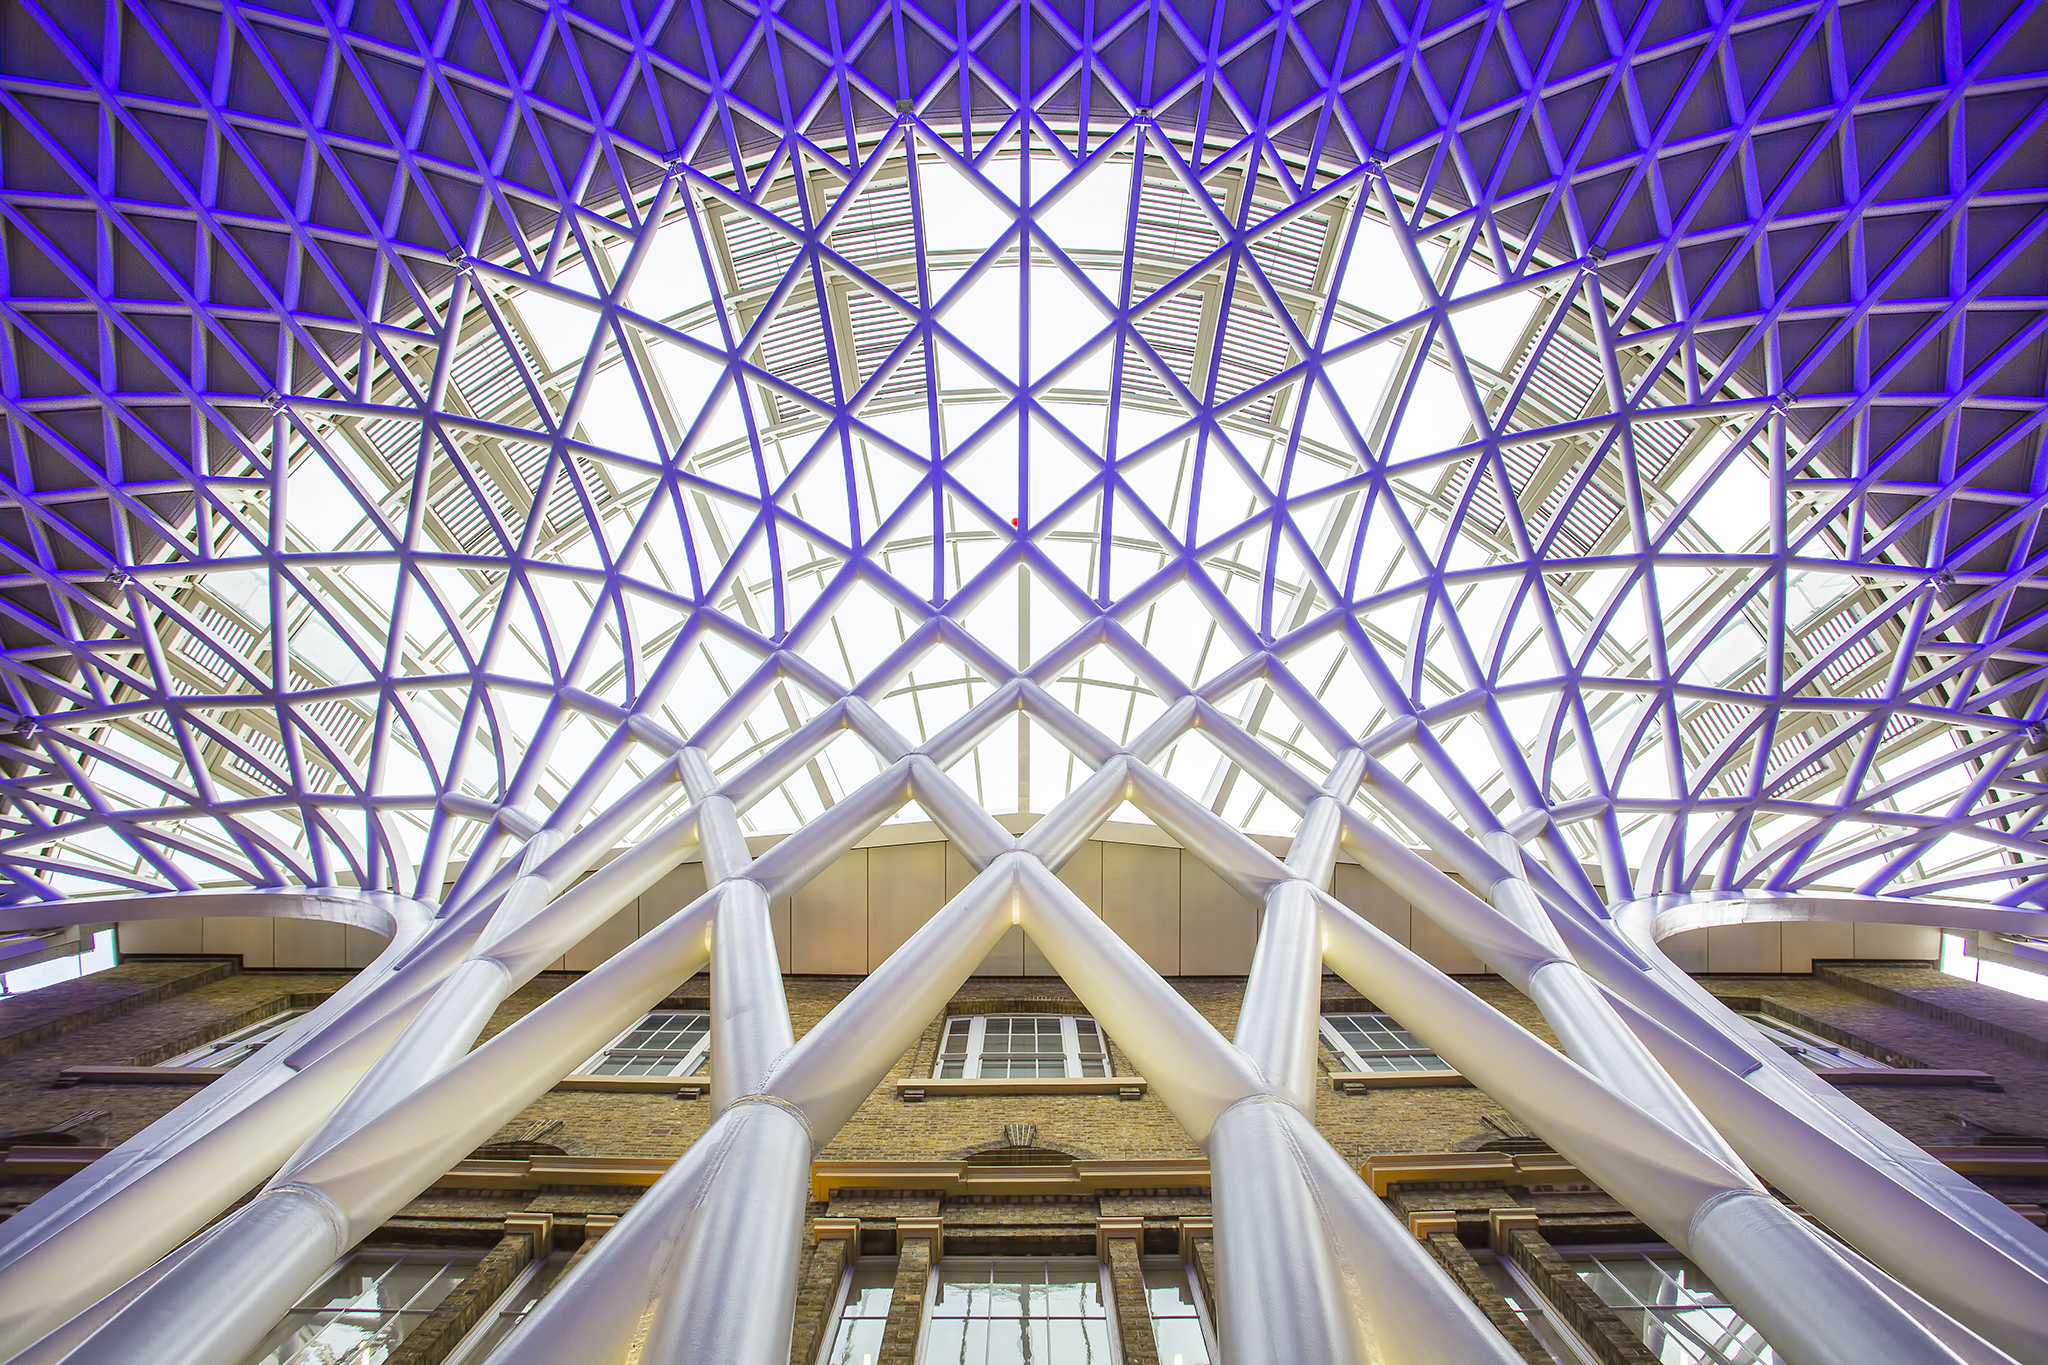 Kings Cross Main Line Station, United Kingdom